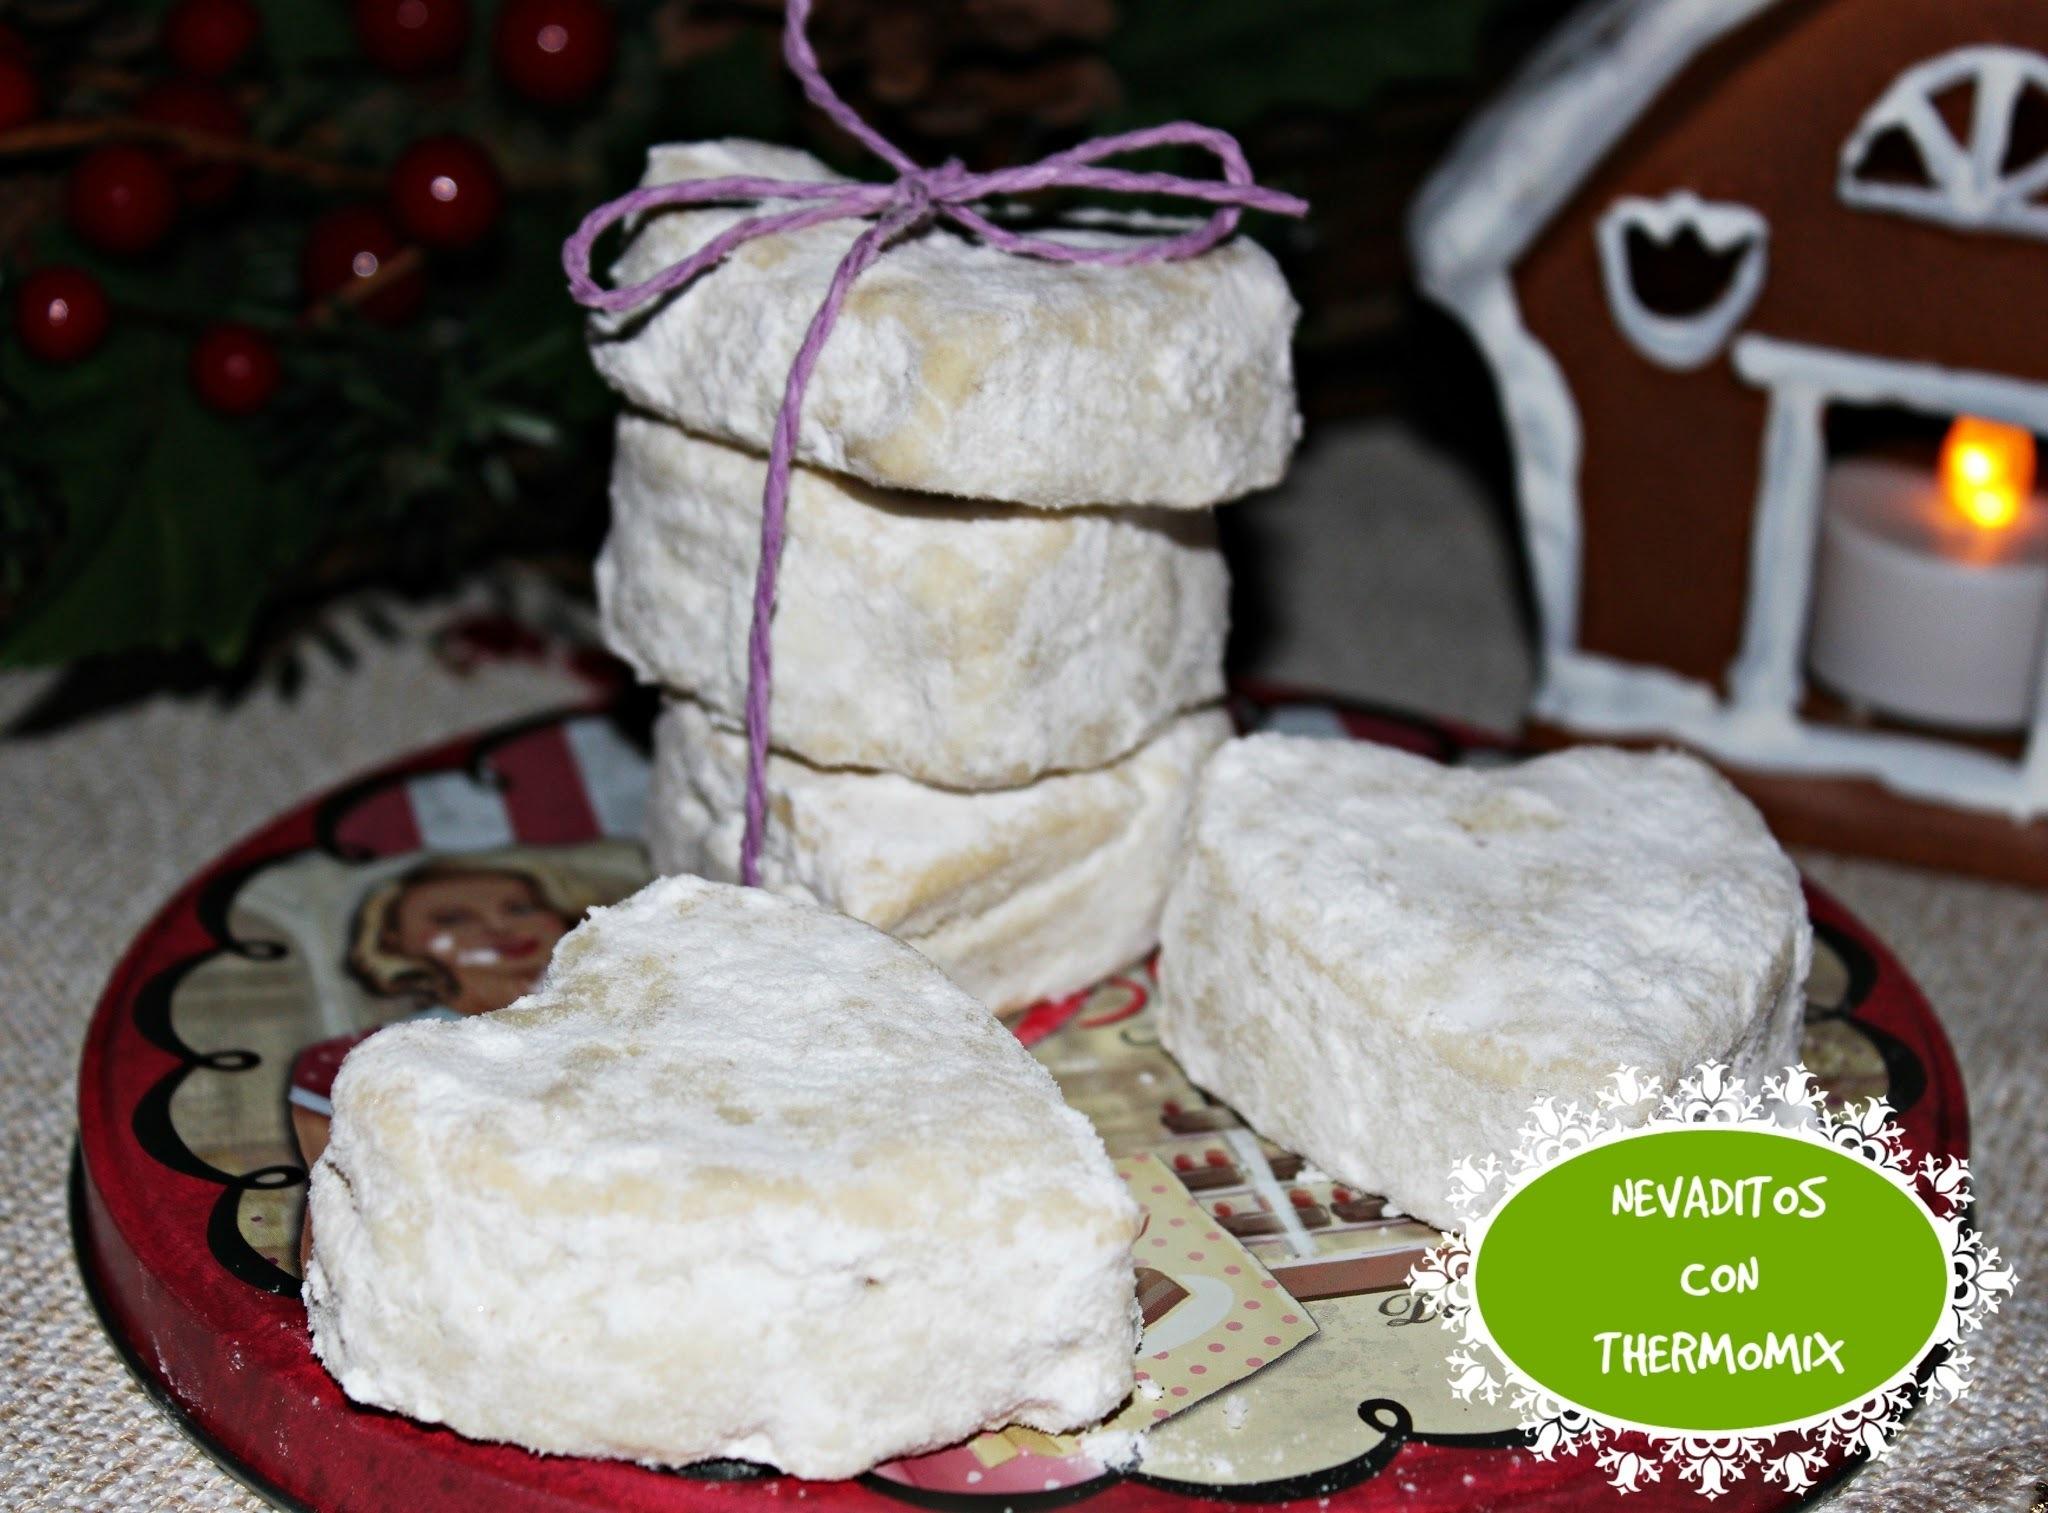 NEVADITOS CON THERMOMIX